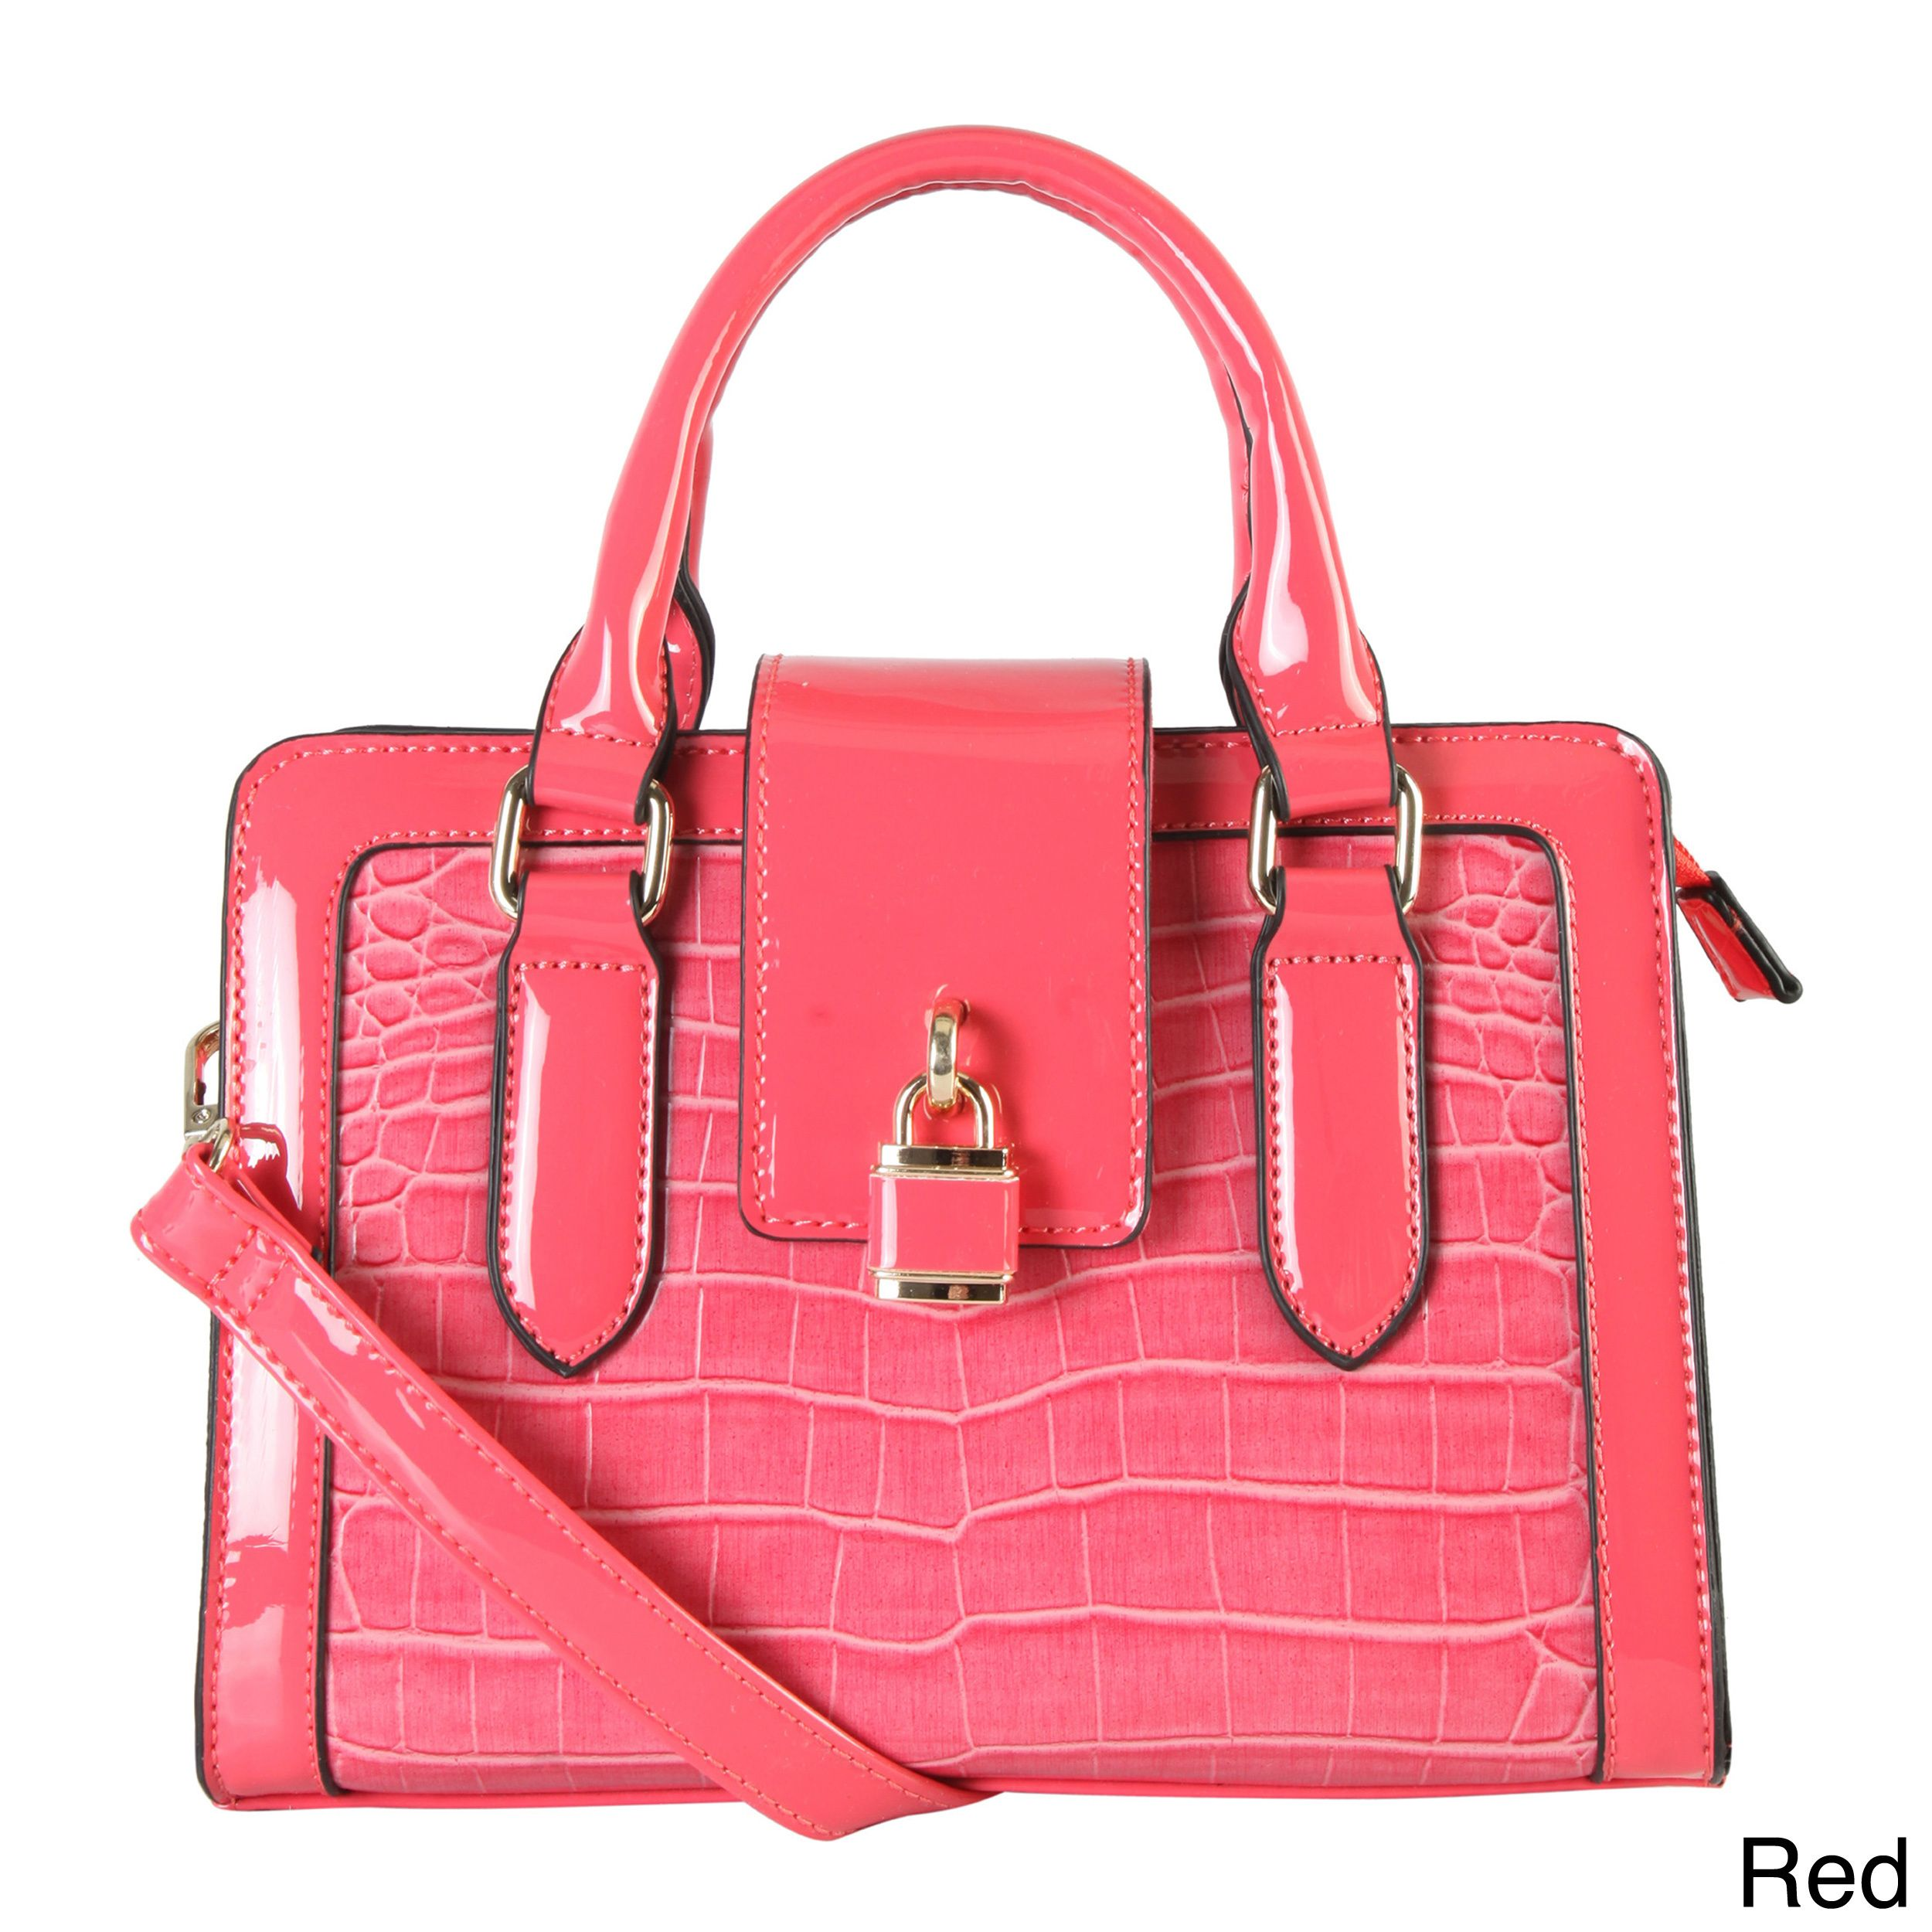 Diophy Stamped Shiny Faux Front Lock Decor Top Handle Handbag, Women's